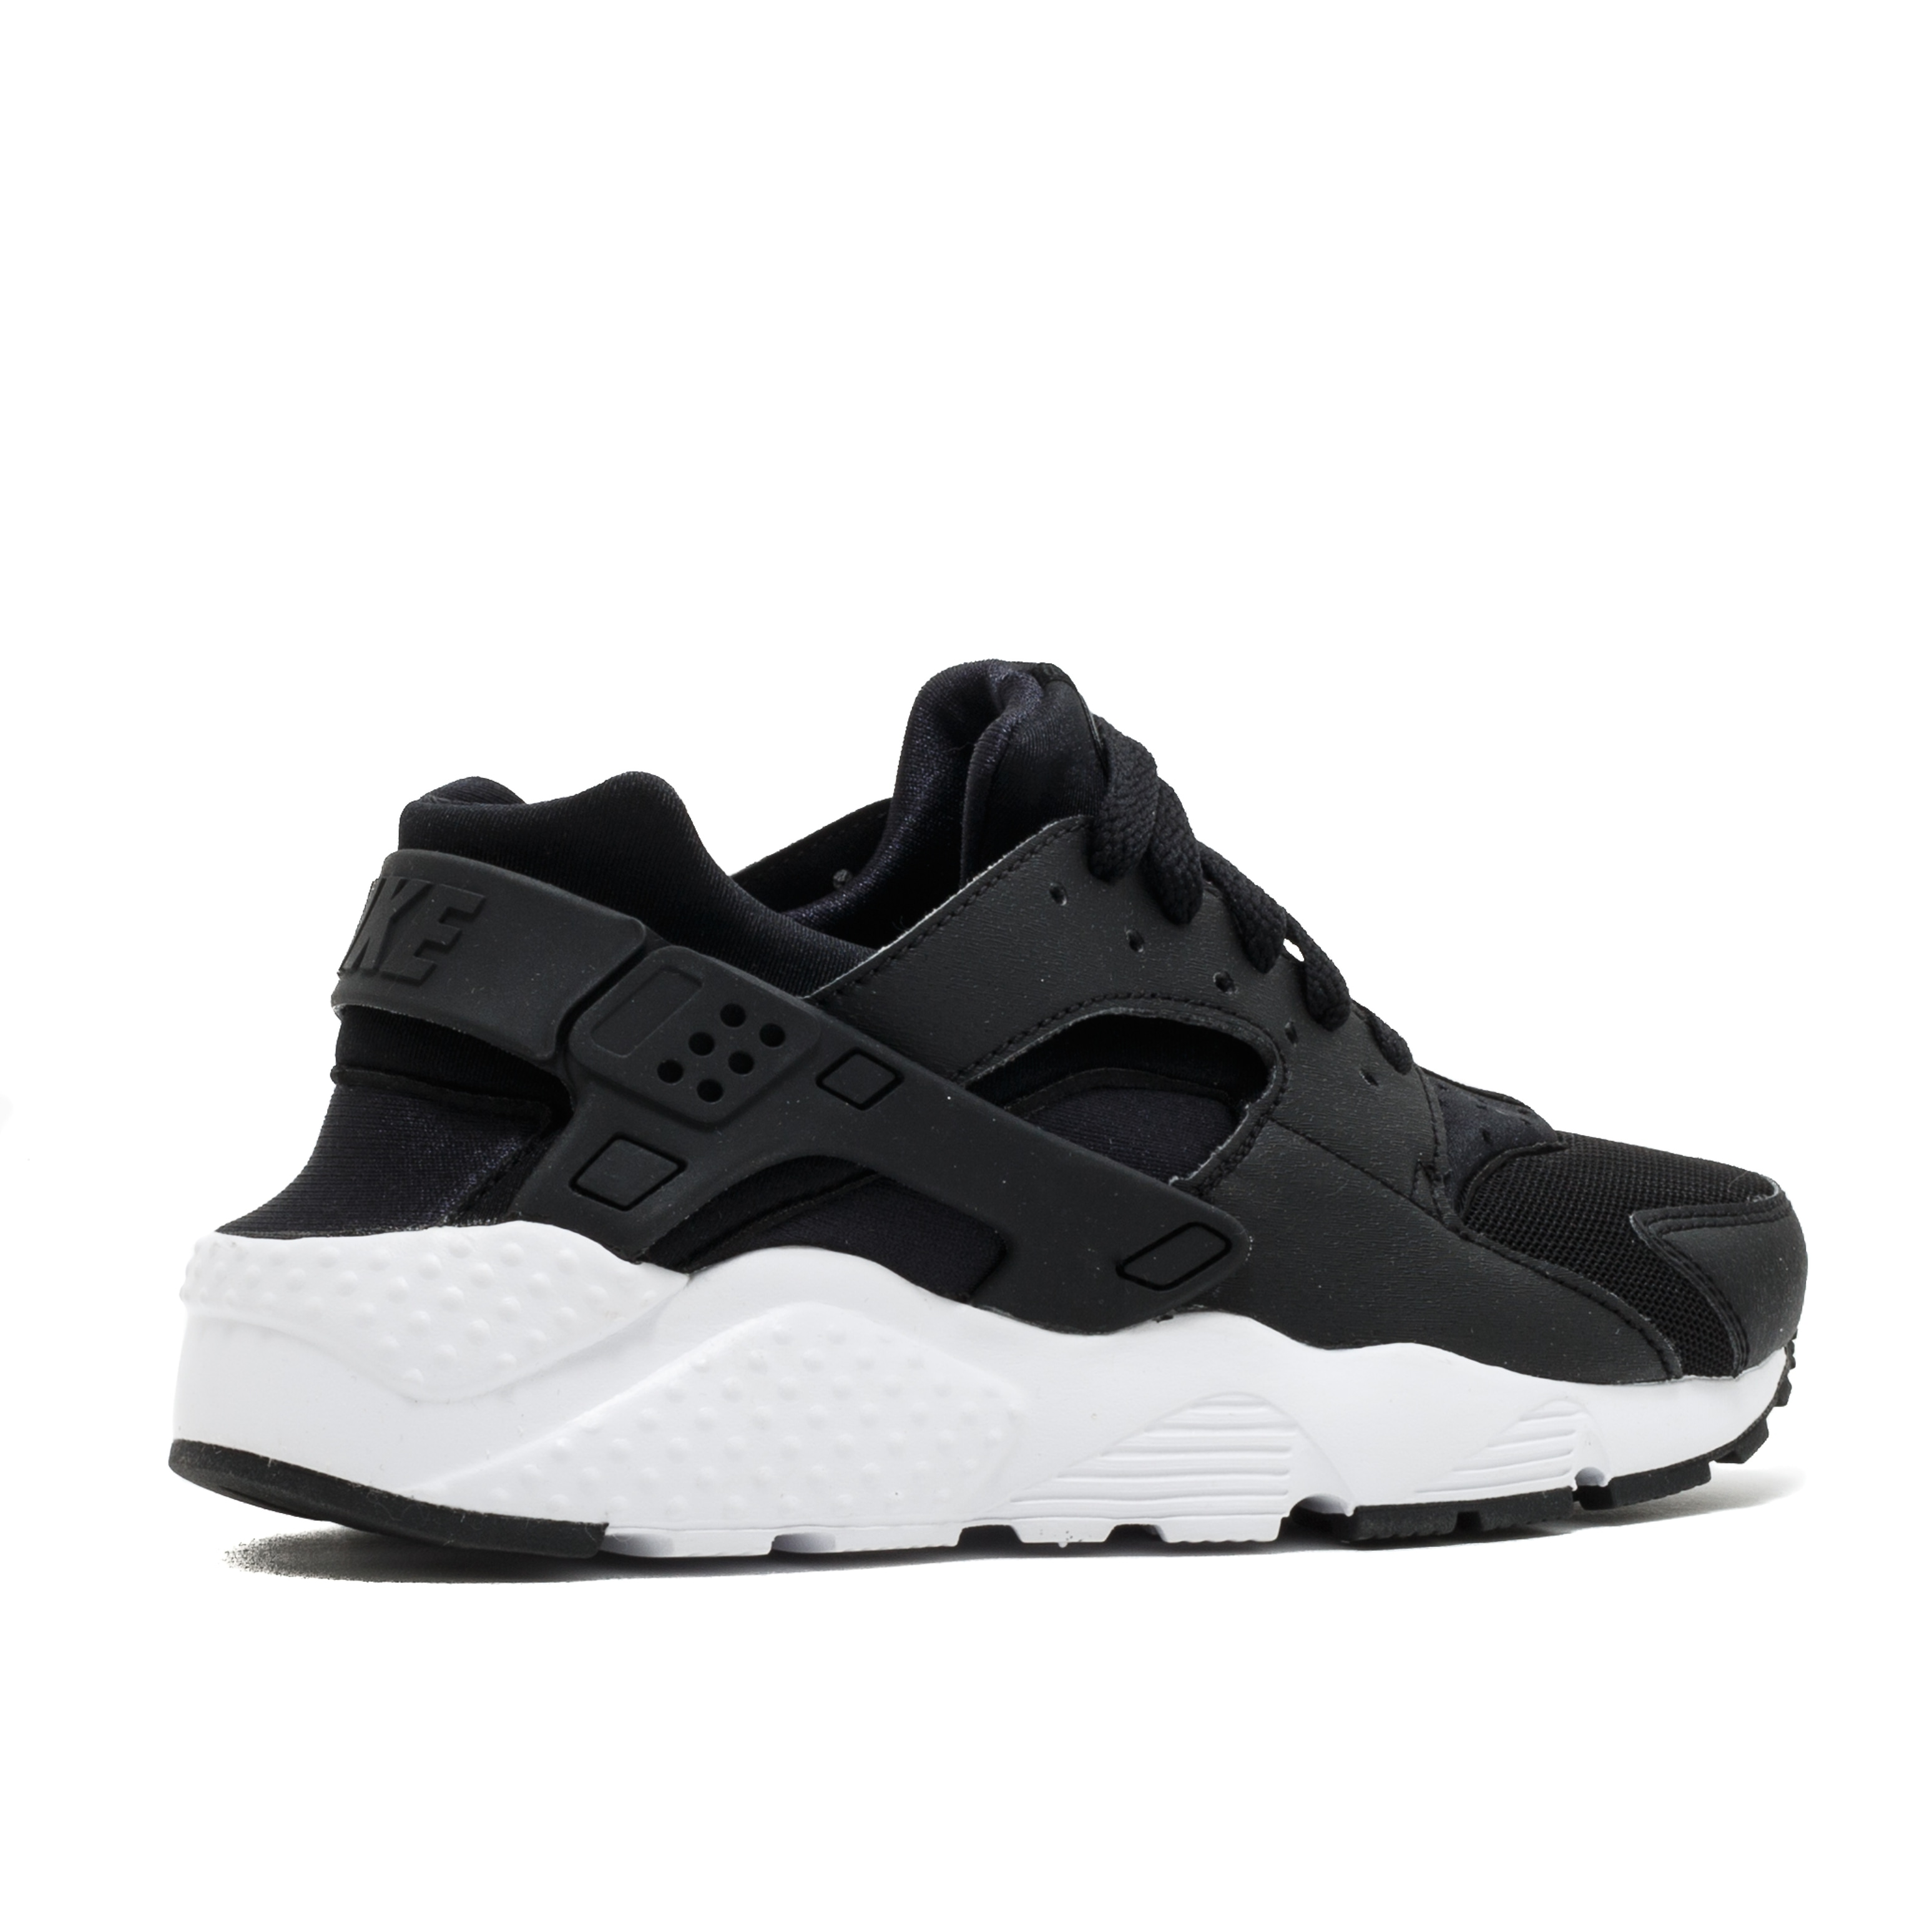 d38884e1ef7 Shop Nike Womens Air Huarache Low Top Lace Up Running Sneaker - 6.5 - Free  Shipping Today - Overstock.com - 25980507